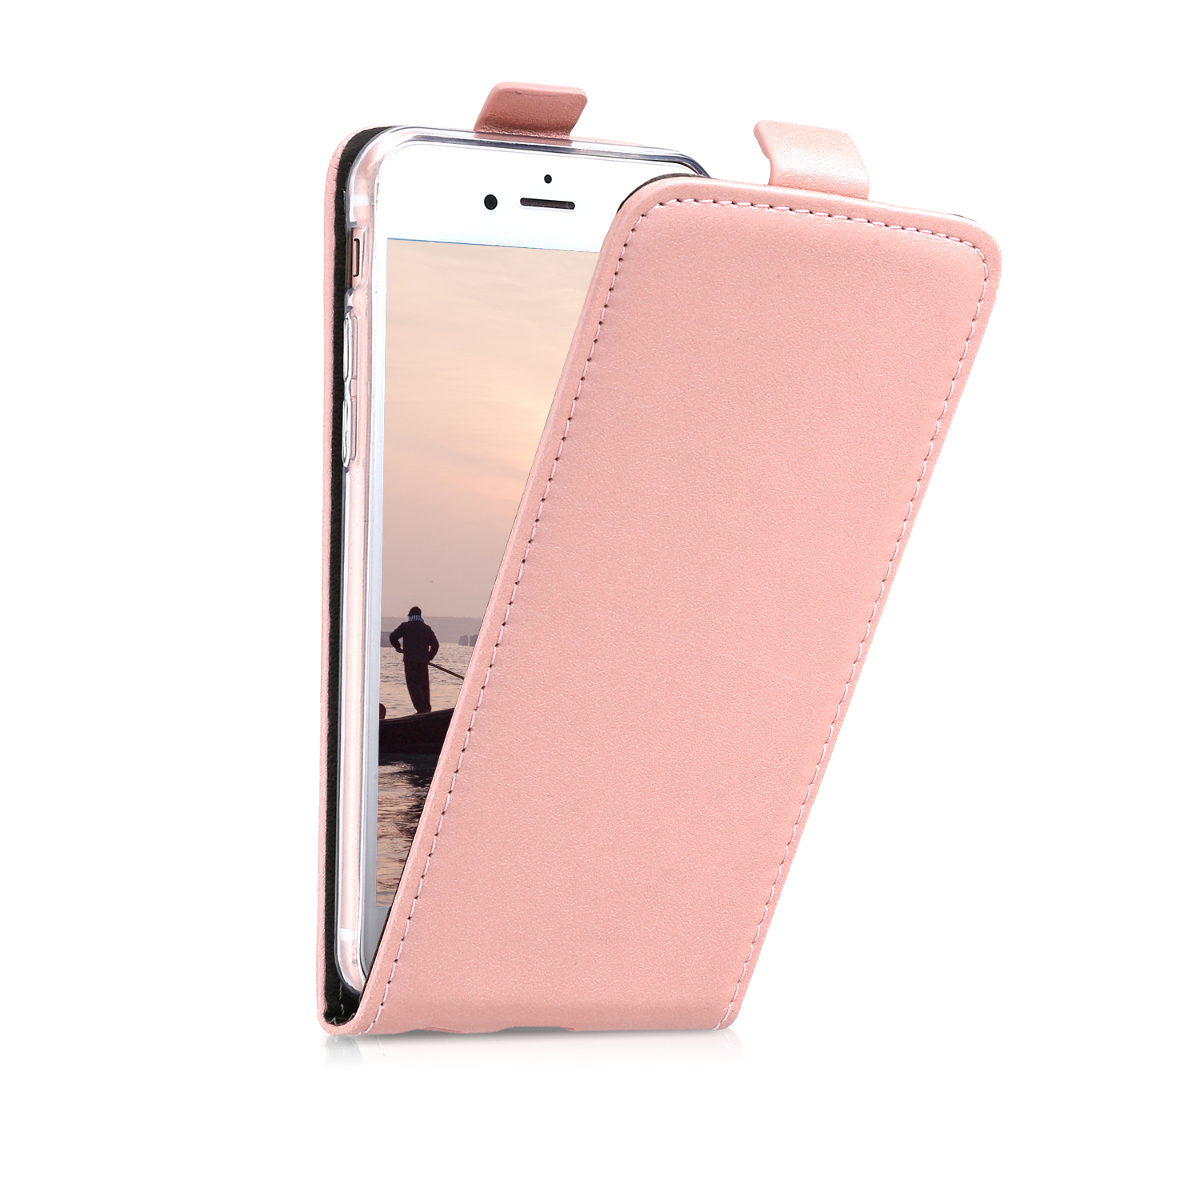 FUNDA-PLEGABLE-PARA-APPLE-IPHONE-6-6S-DE-CUERO-SINTETICO